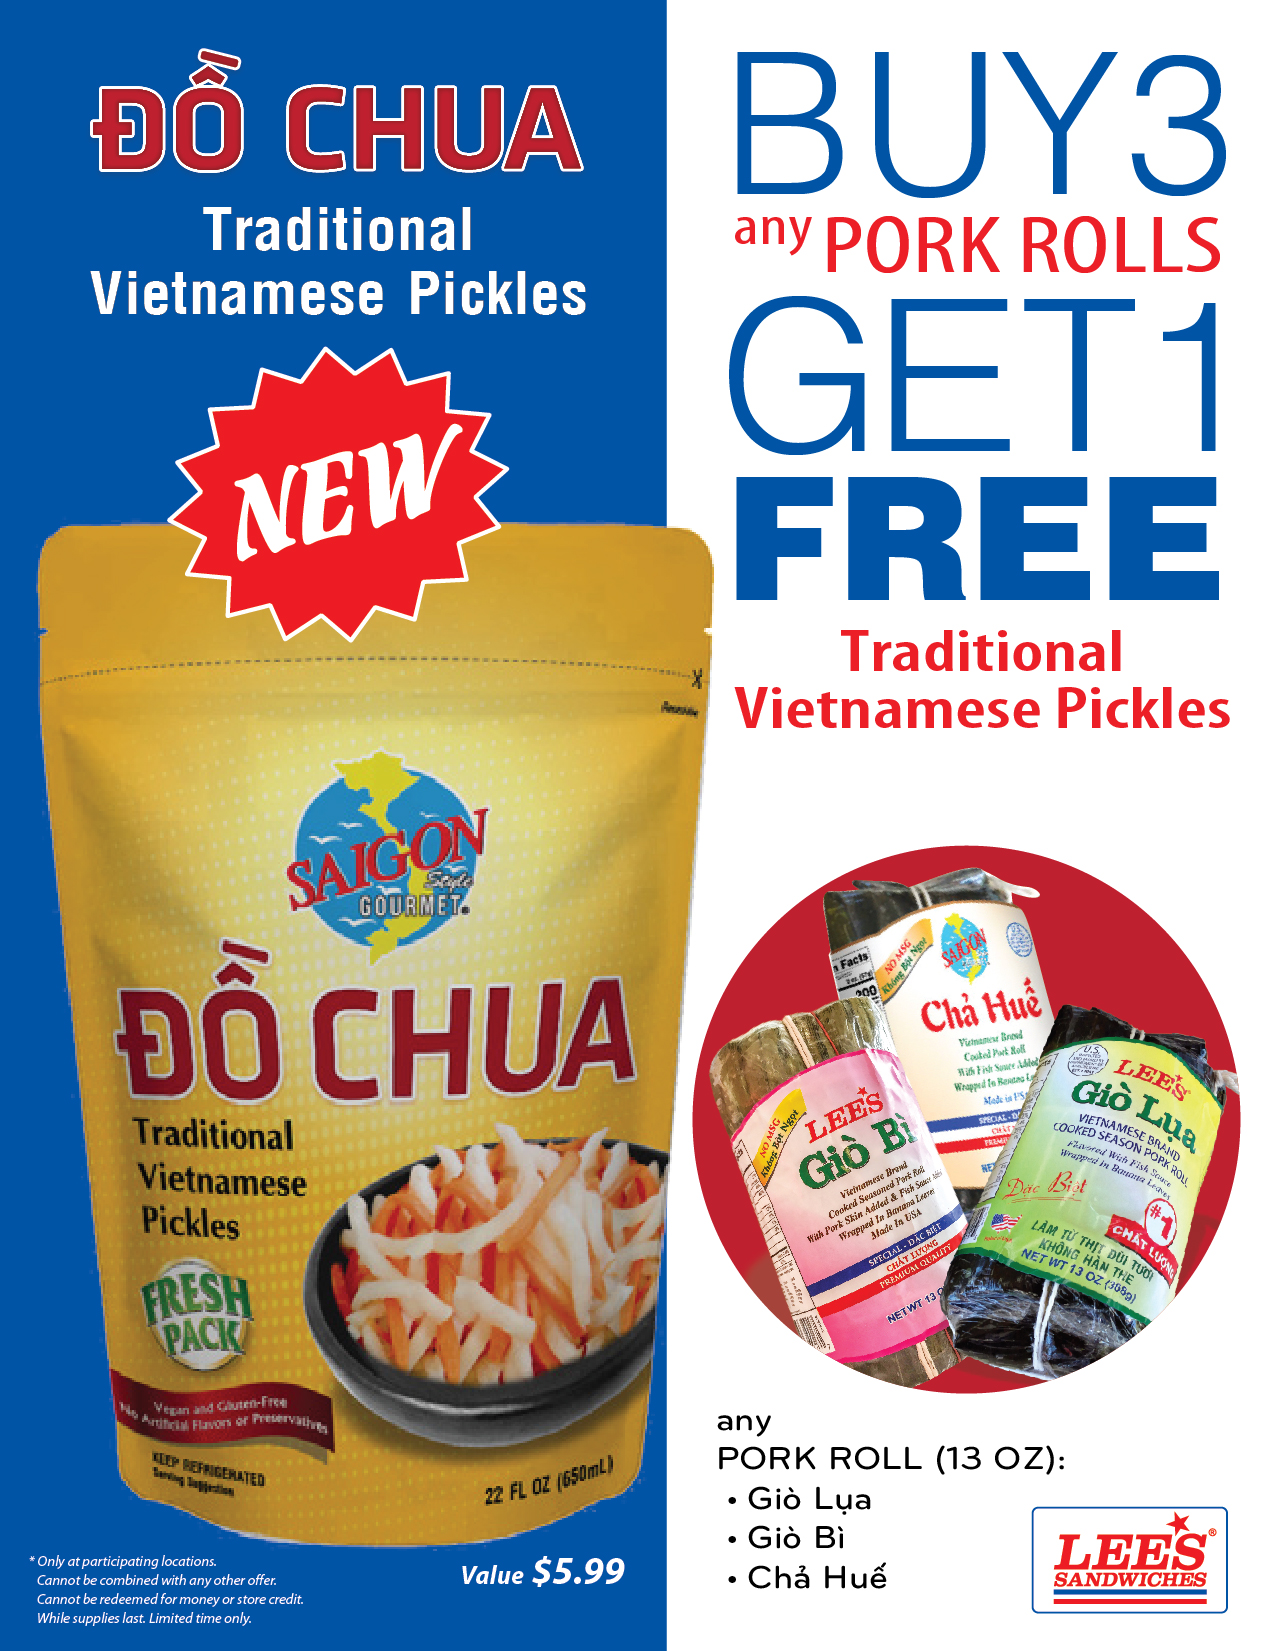 Buy 3 any Pork Rolls 13 oz (Giò Lụa, Giò Bì, Chả Huế) Get 1 Free Traditional Vietnamese Pickles